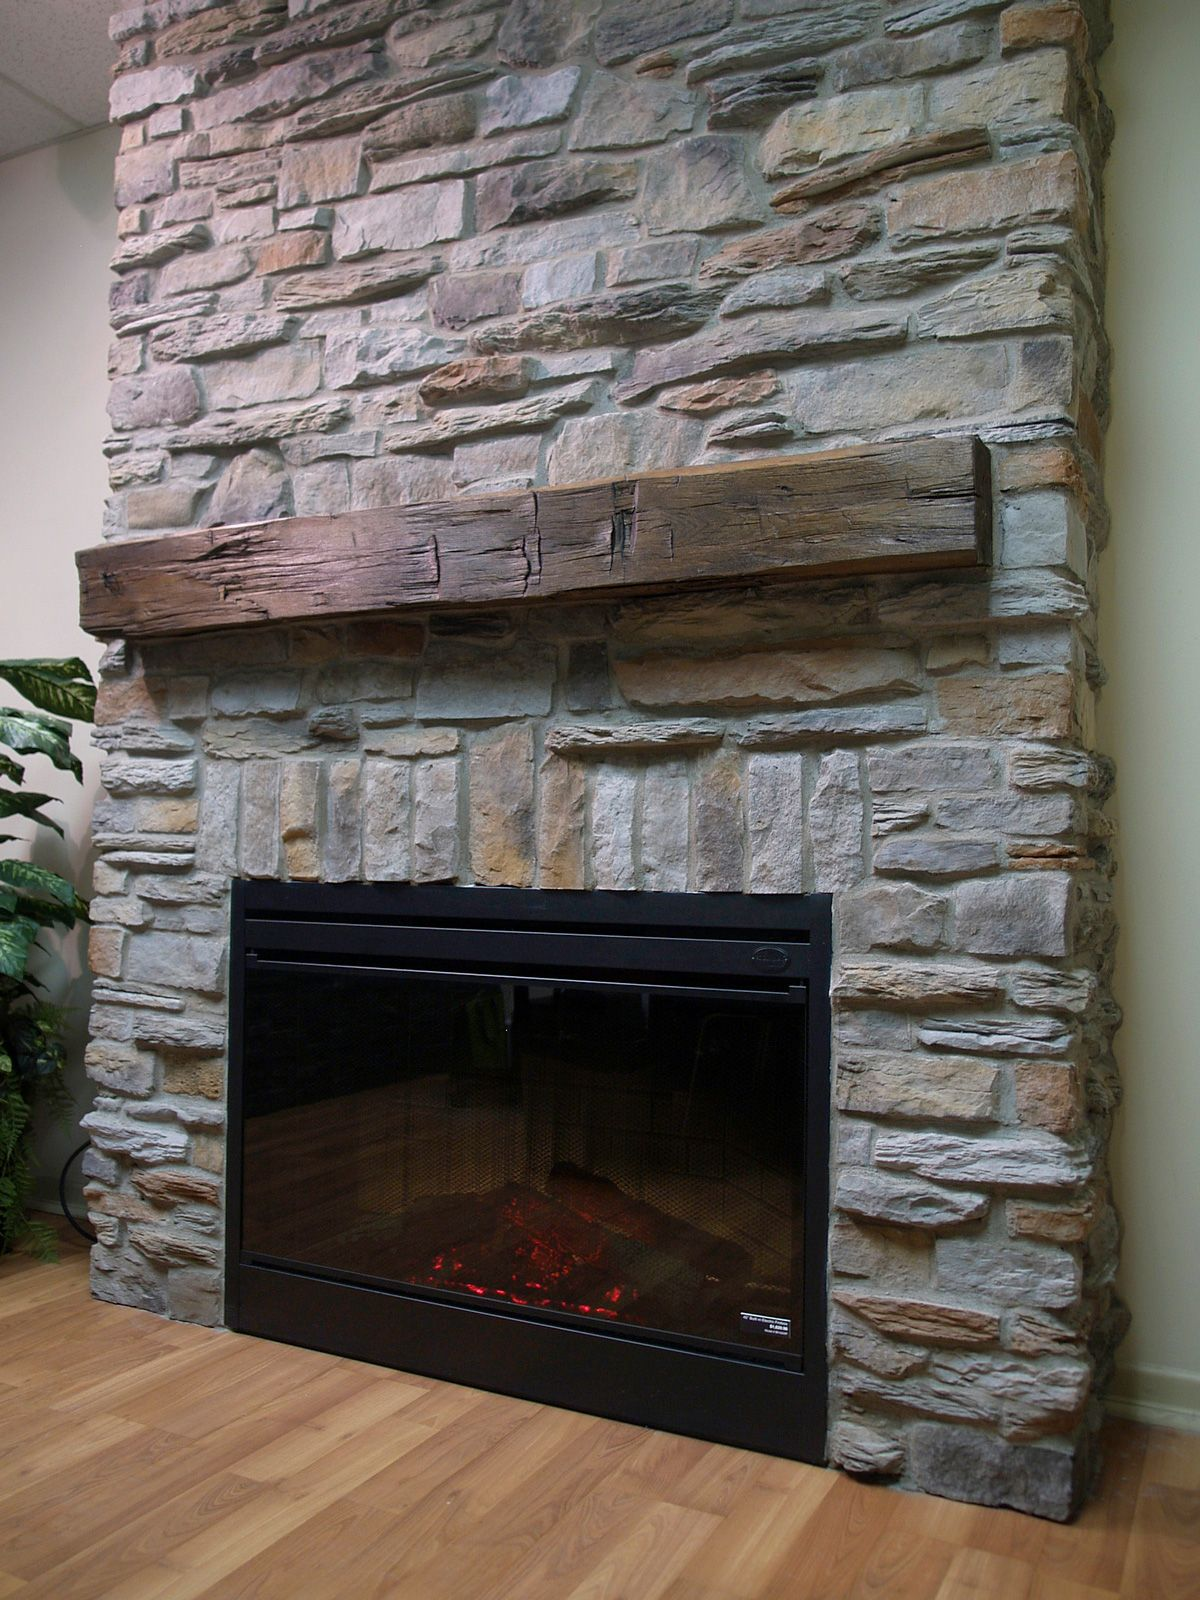 decoration stone veneer stack on fireplace with electric fireplace also on wooden flooring tile